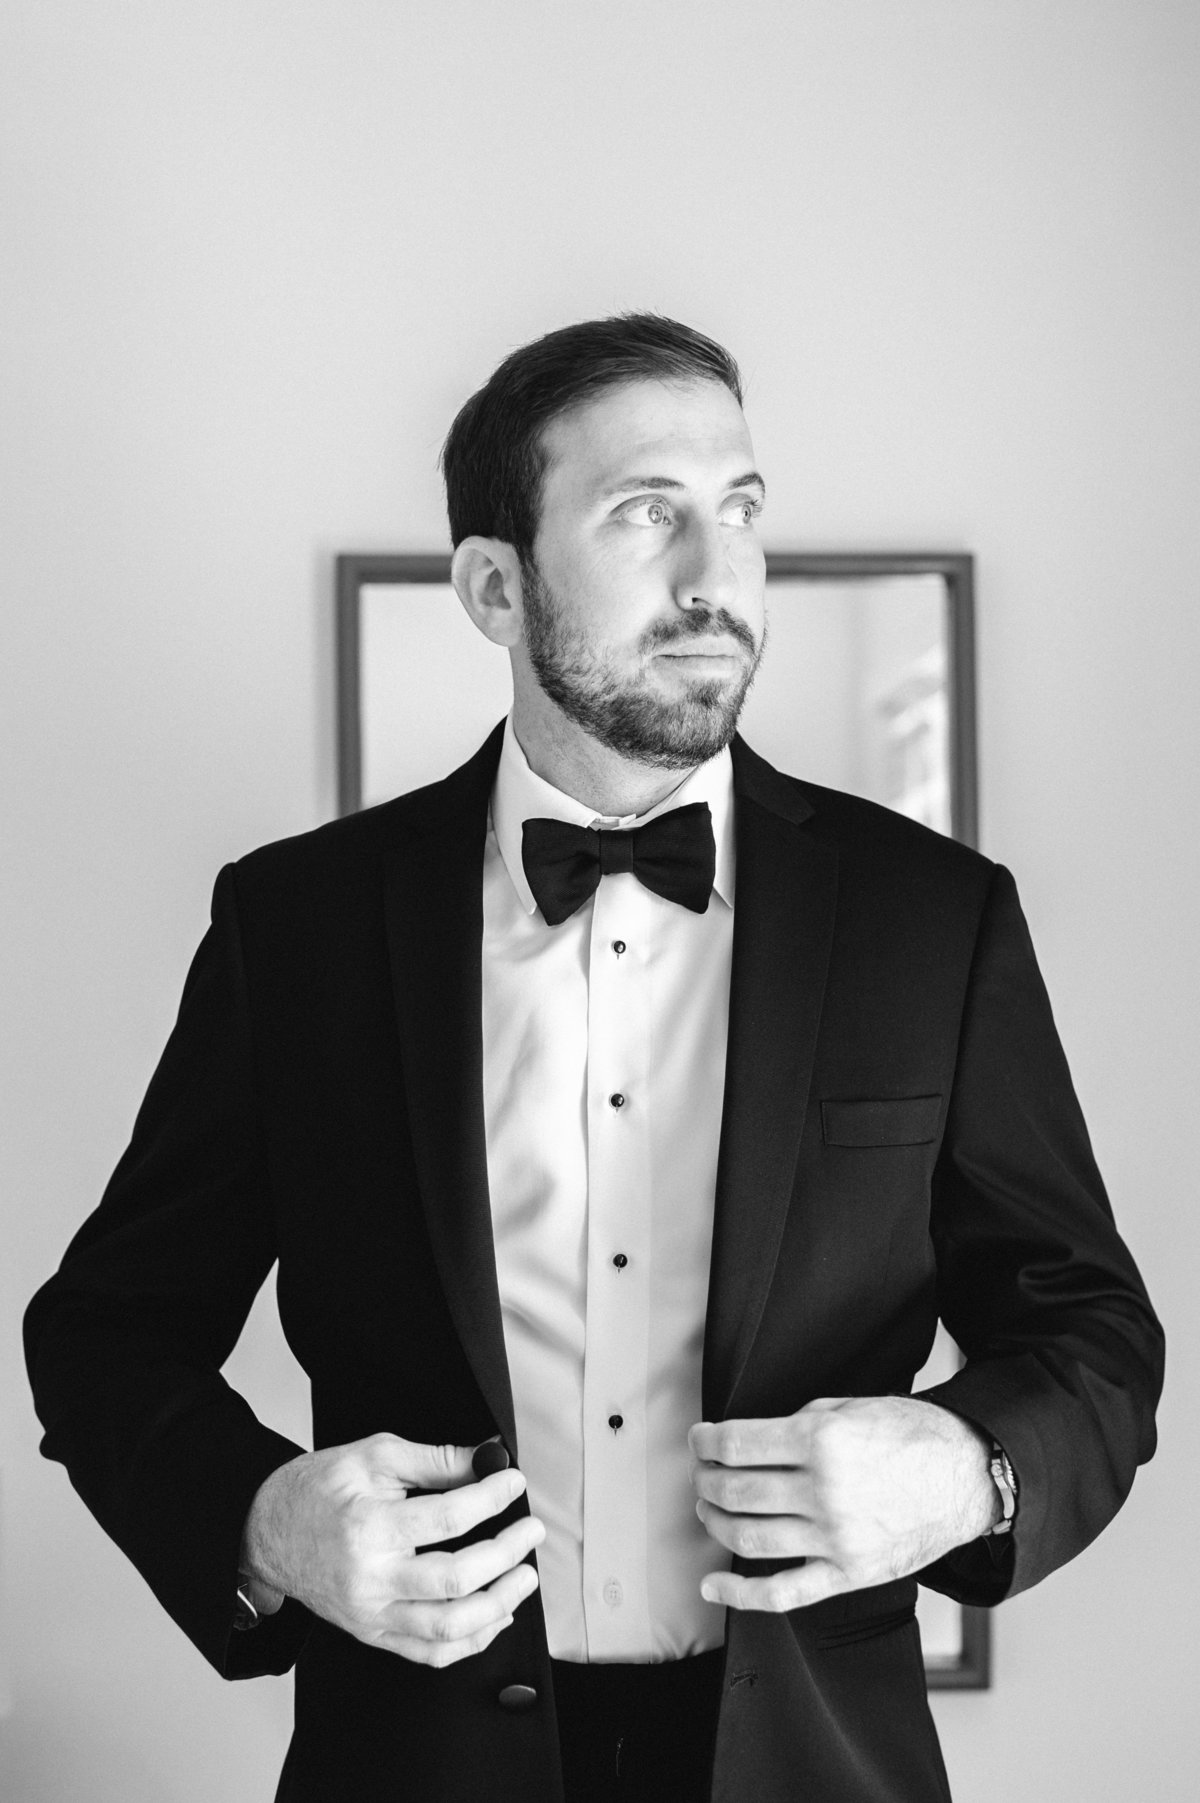 groom buttoning coat wearing black bow tie